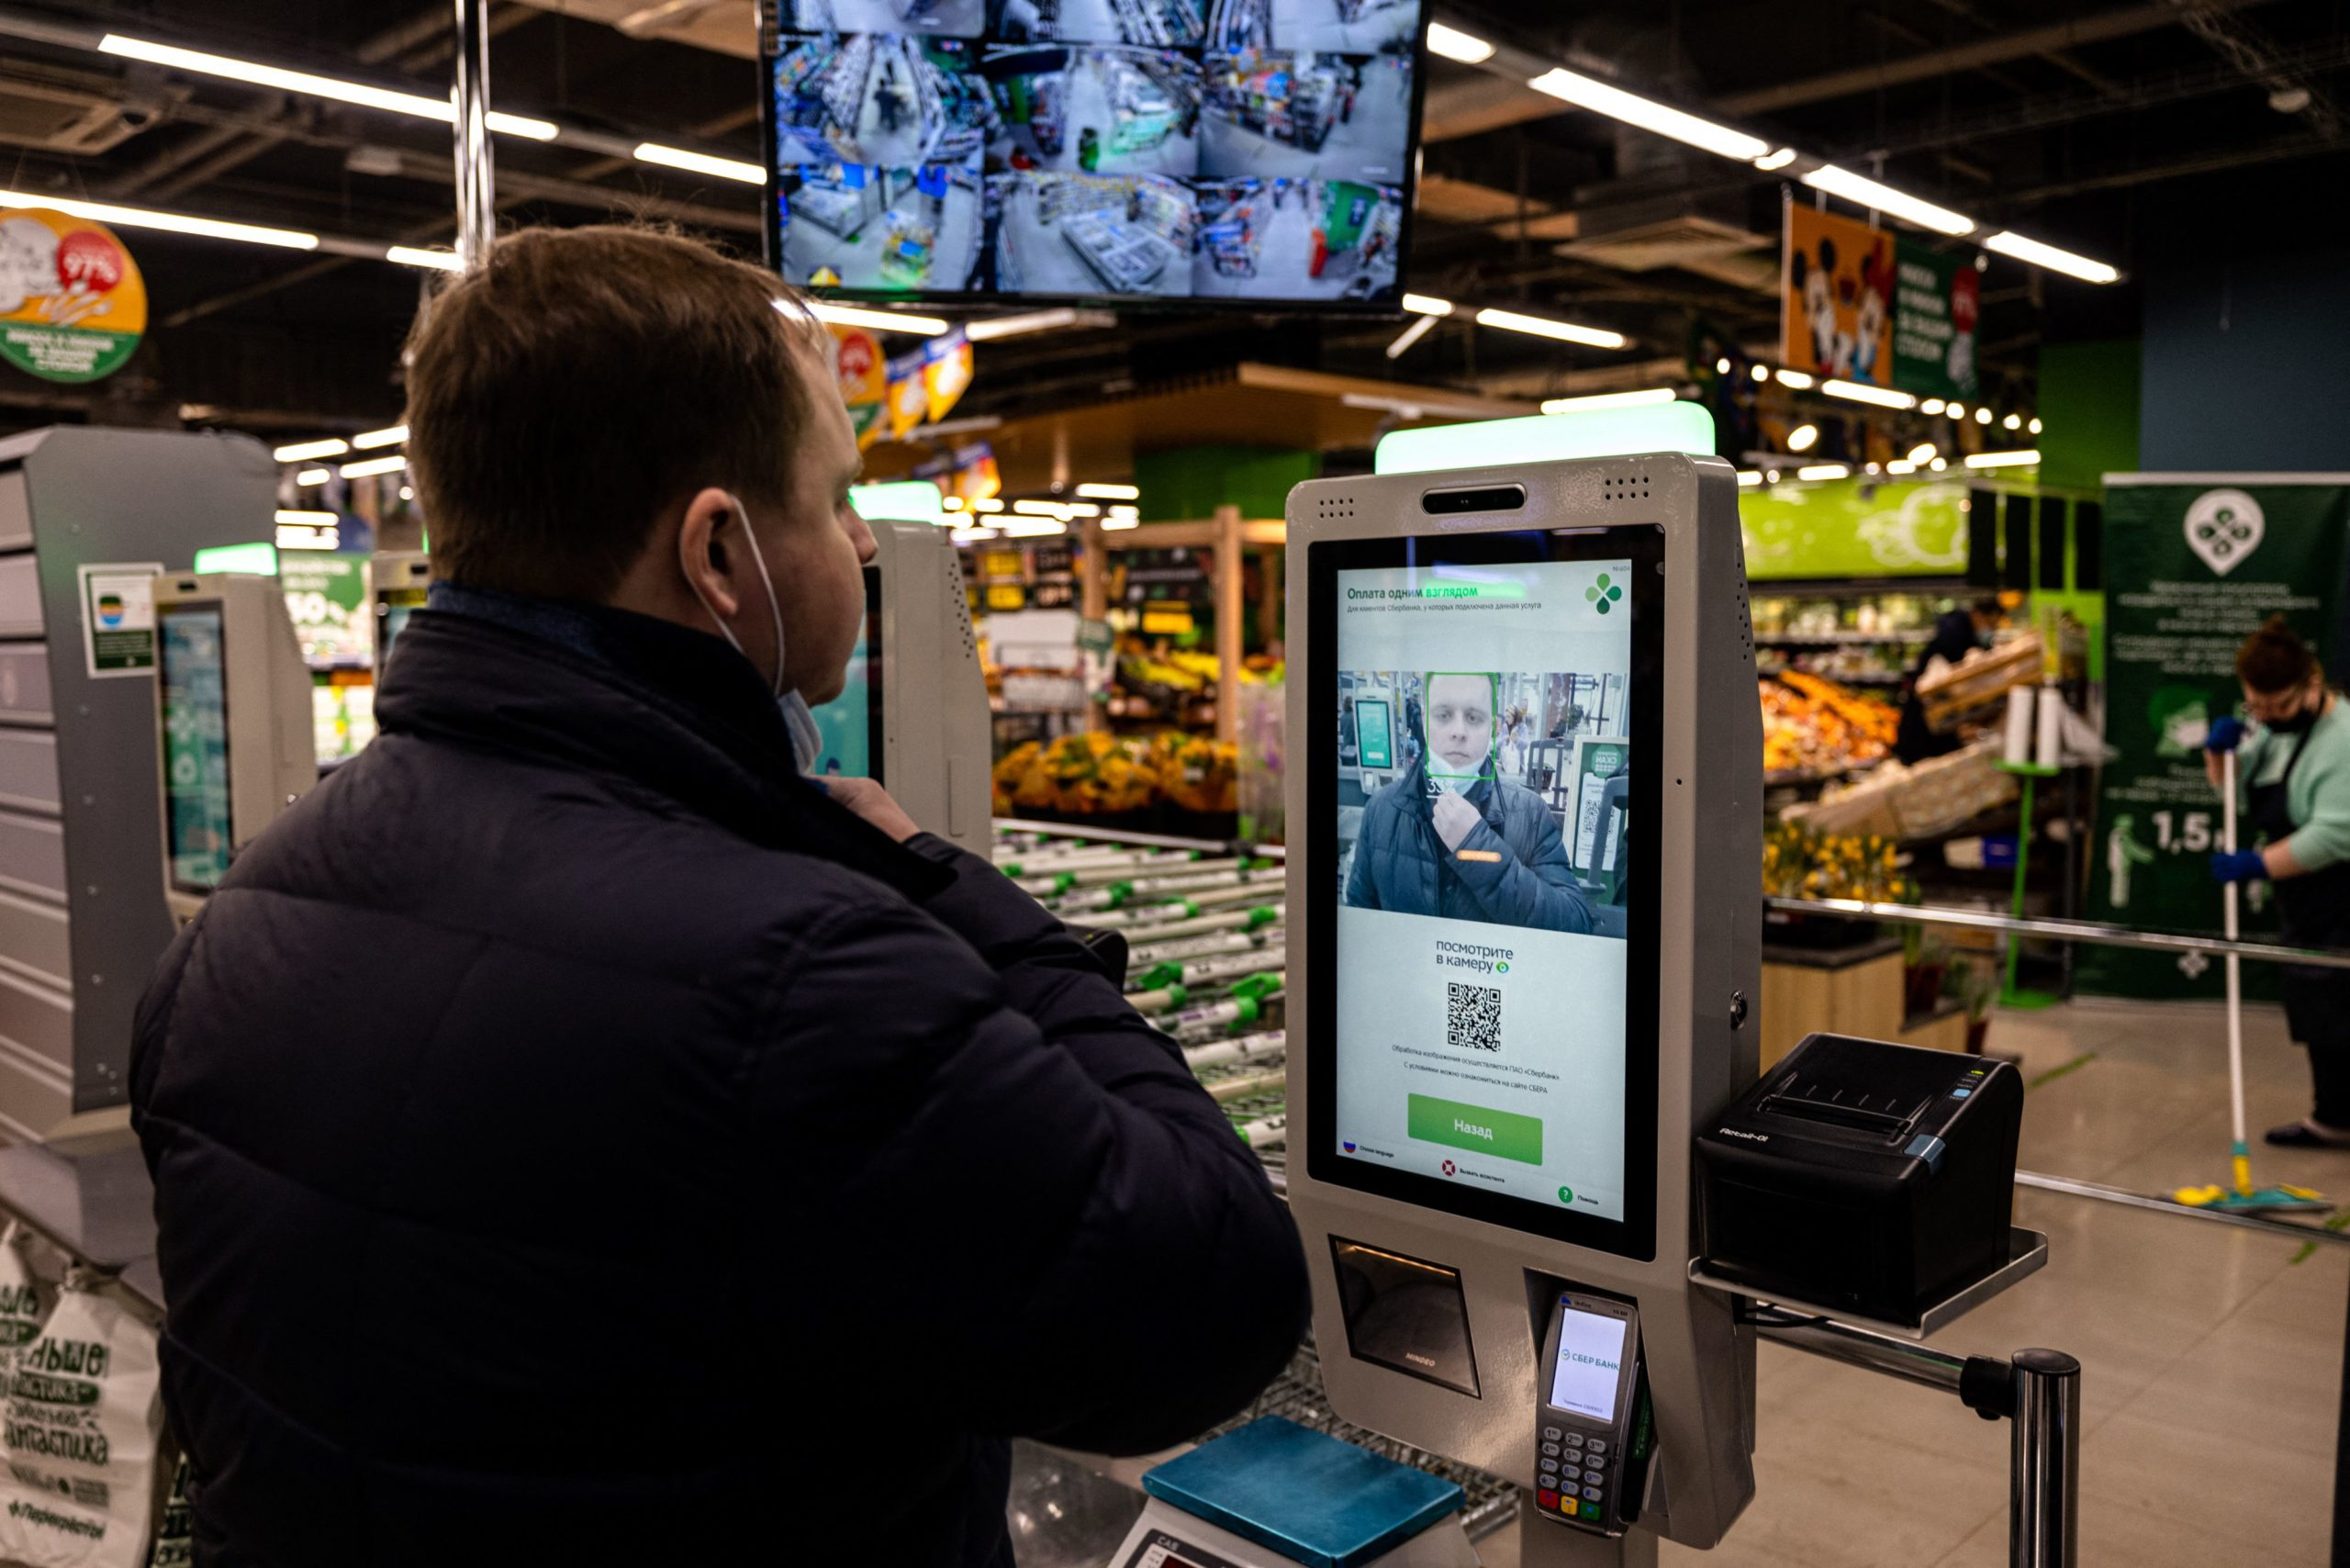 An X5 group representative demonstrates a facial recognition payment system at a self-checkout machine in a Perekrestok supermarket in Moscow on March 9, 2021. (Photo by DIMITAR DILKOFF/AFP via Getty Images)